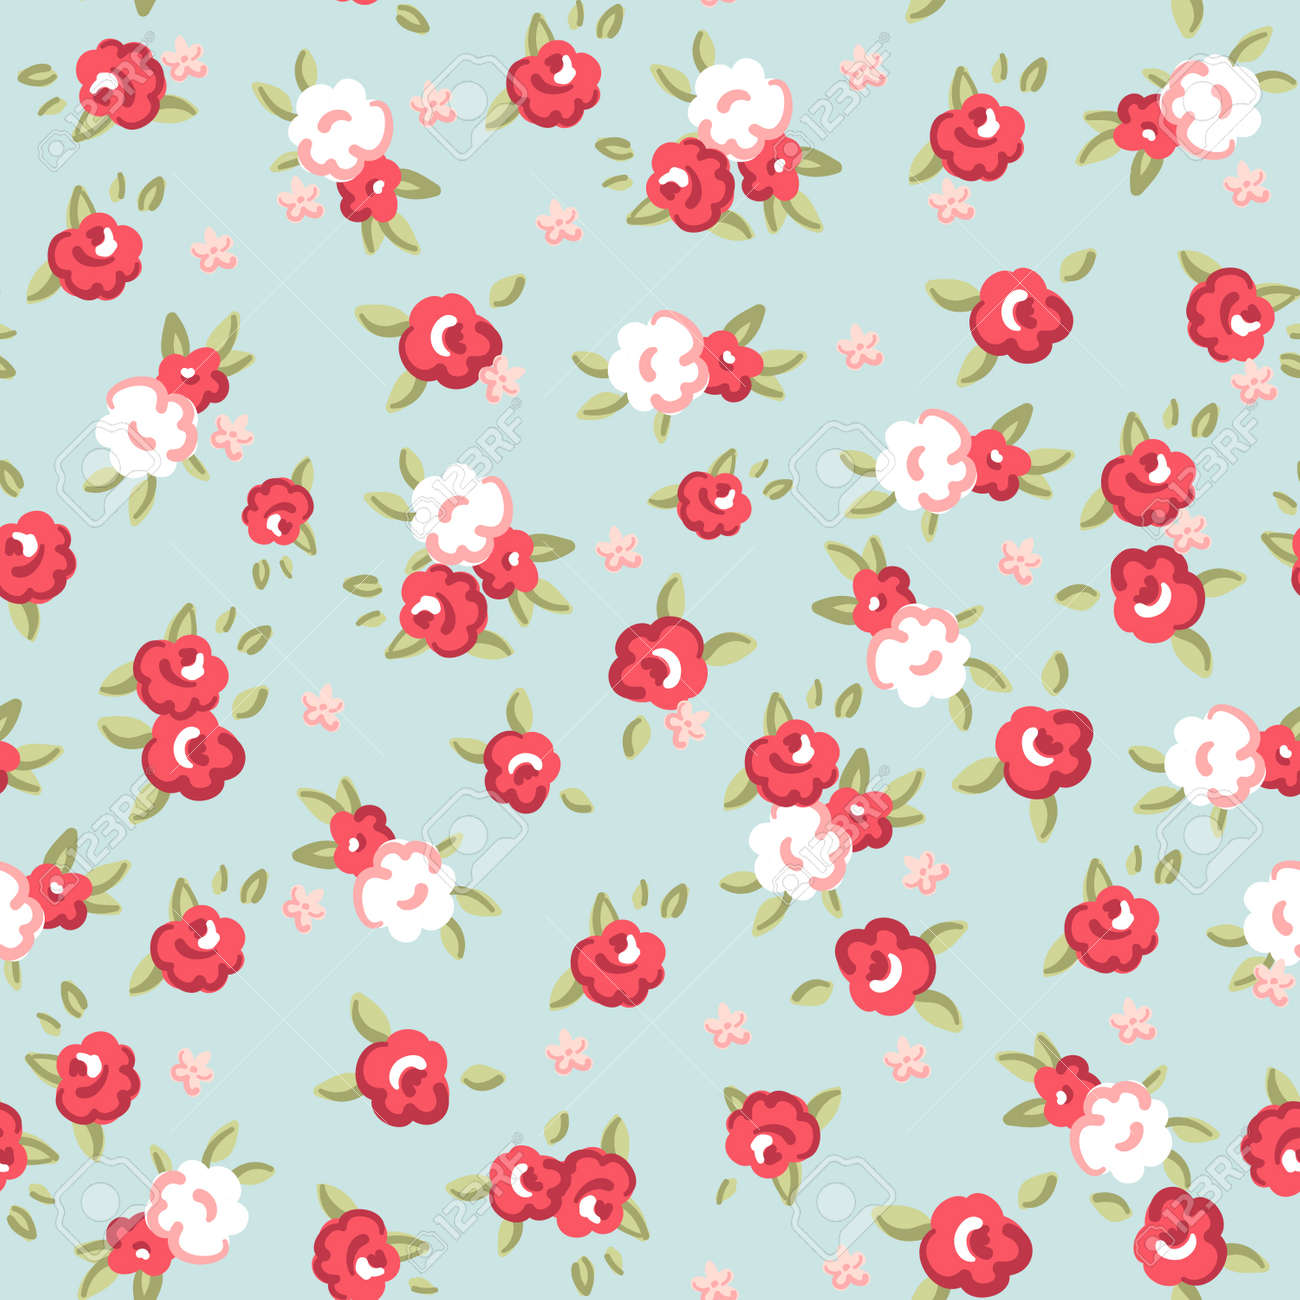 English Rose Seamless Wallpaper Pattern With Pink Roses On Blue